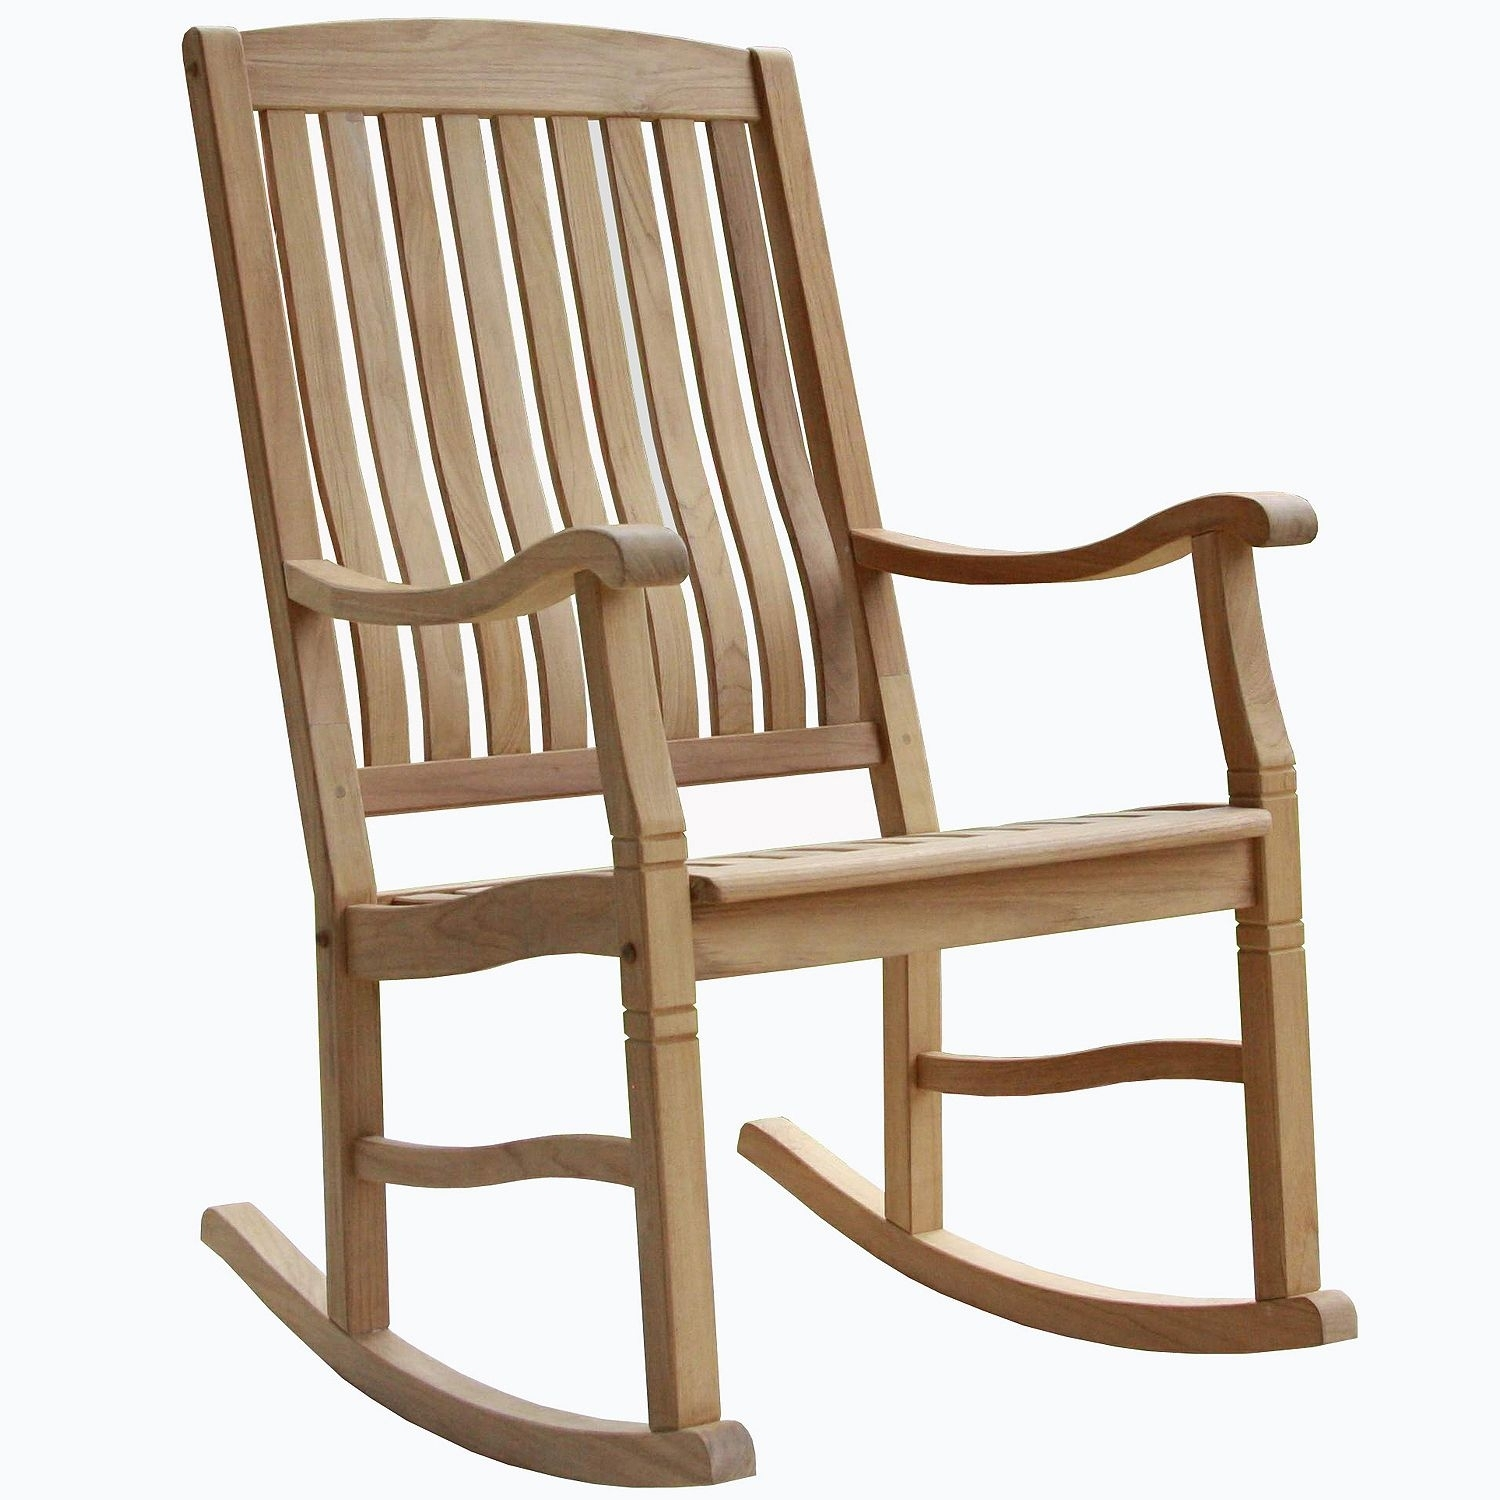 Inspiration about Teak Rocking Chair (2 Pack) 78742041506 | Ebay Intended For Teak Patio Rocking Chairs (#10 of 15)